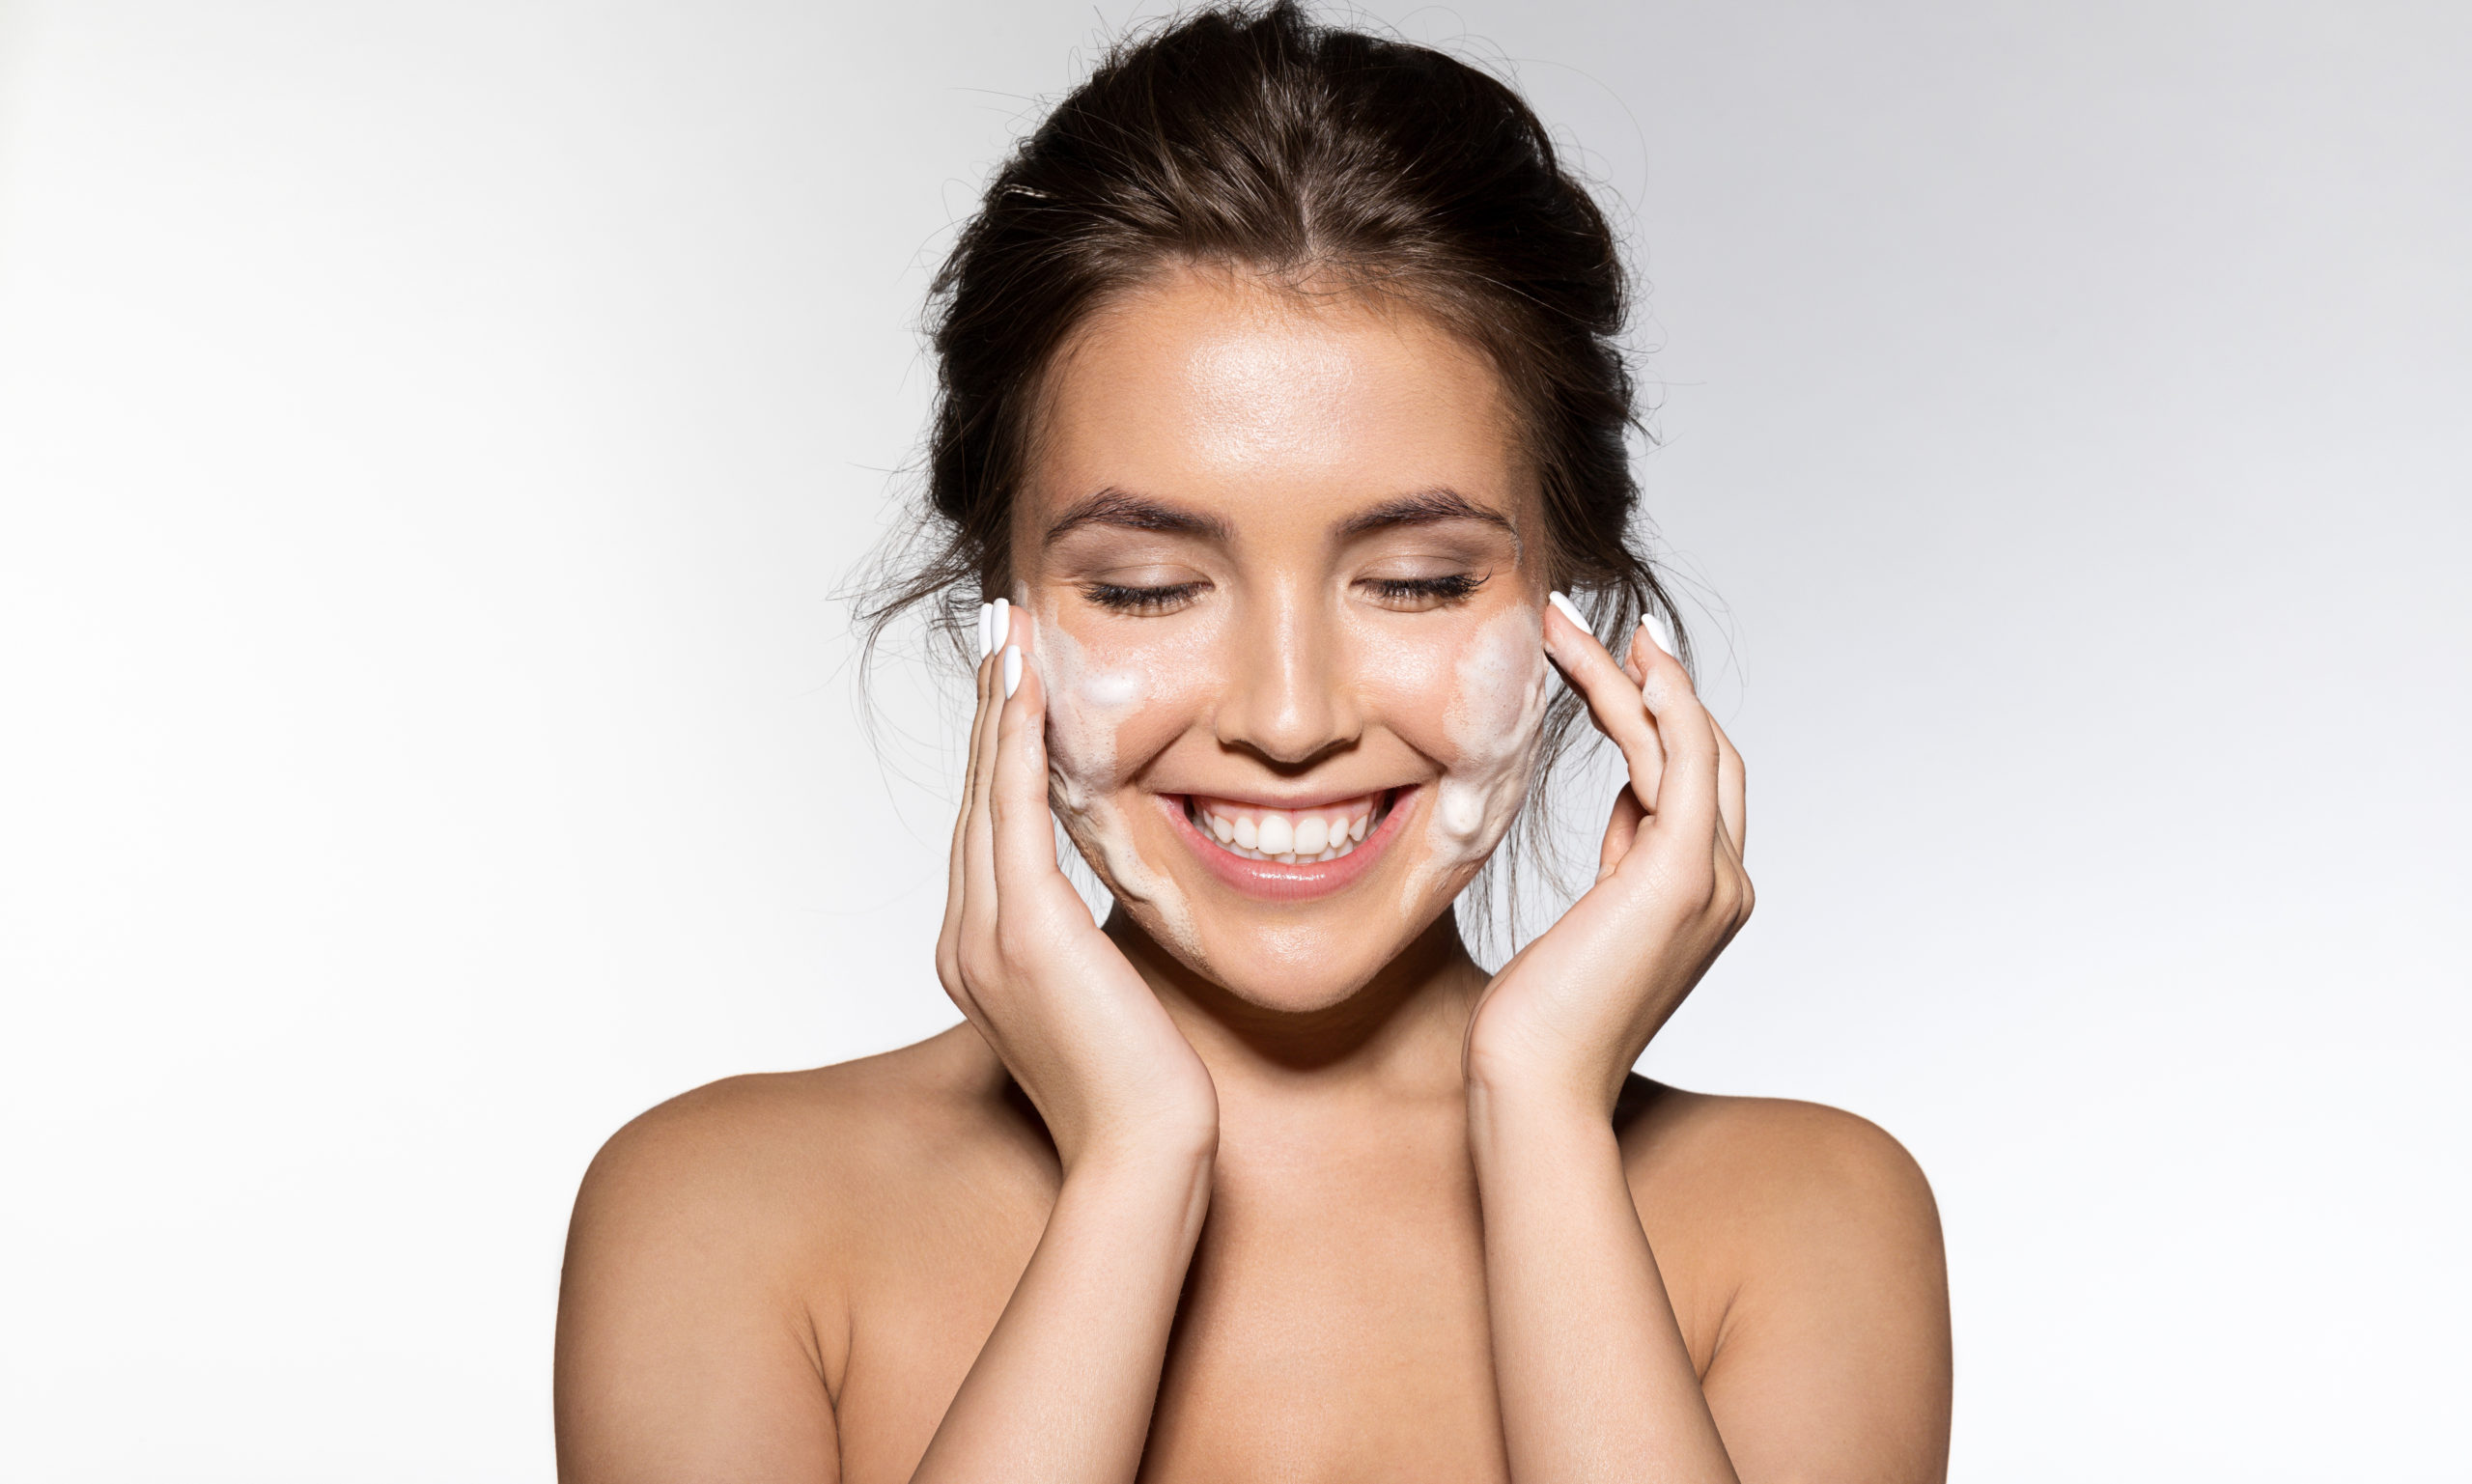 Woman rubbing lotion on her face